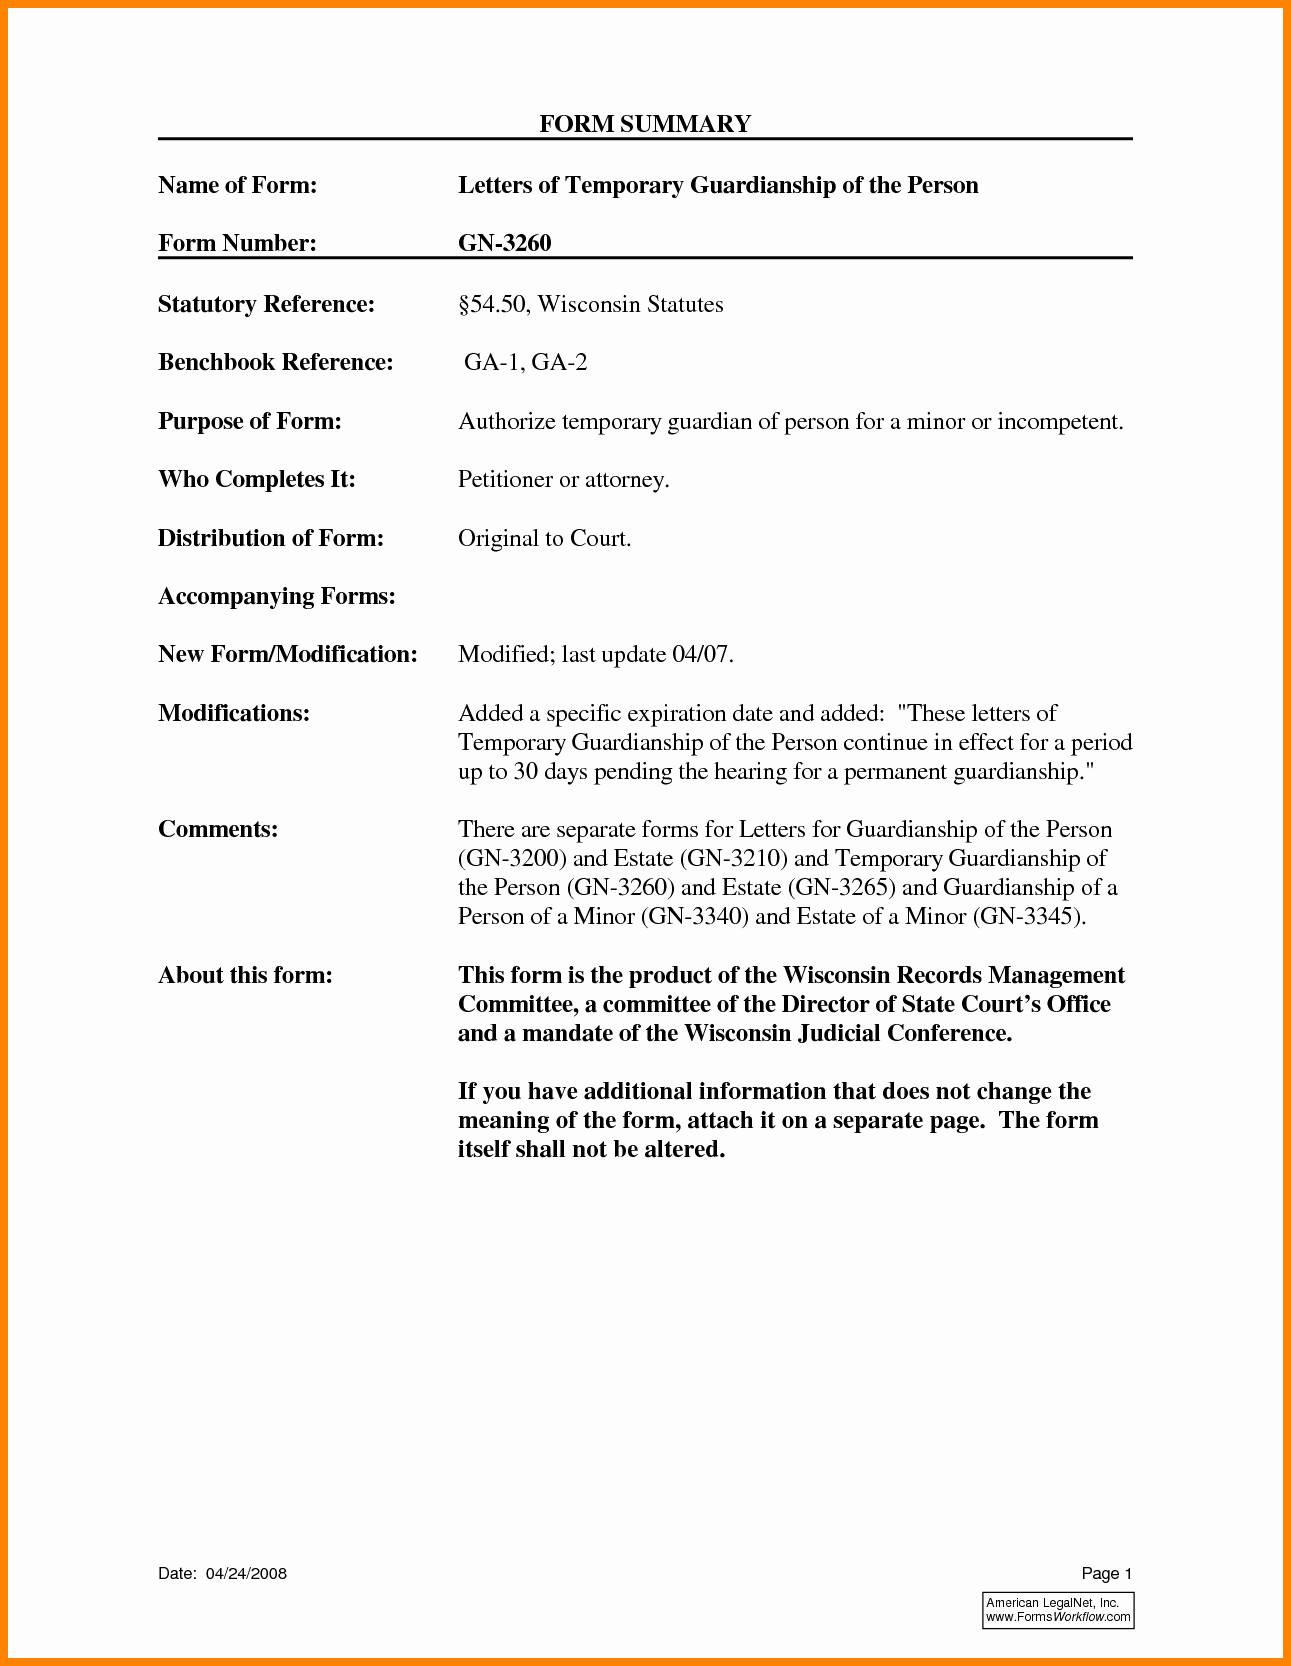 Template for Temporary Guardianship Letter - Temporary Guardianship form for Grandparents Beautiful Temporary